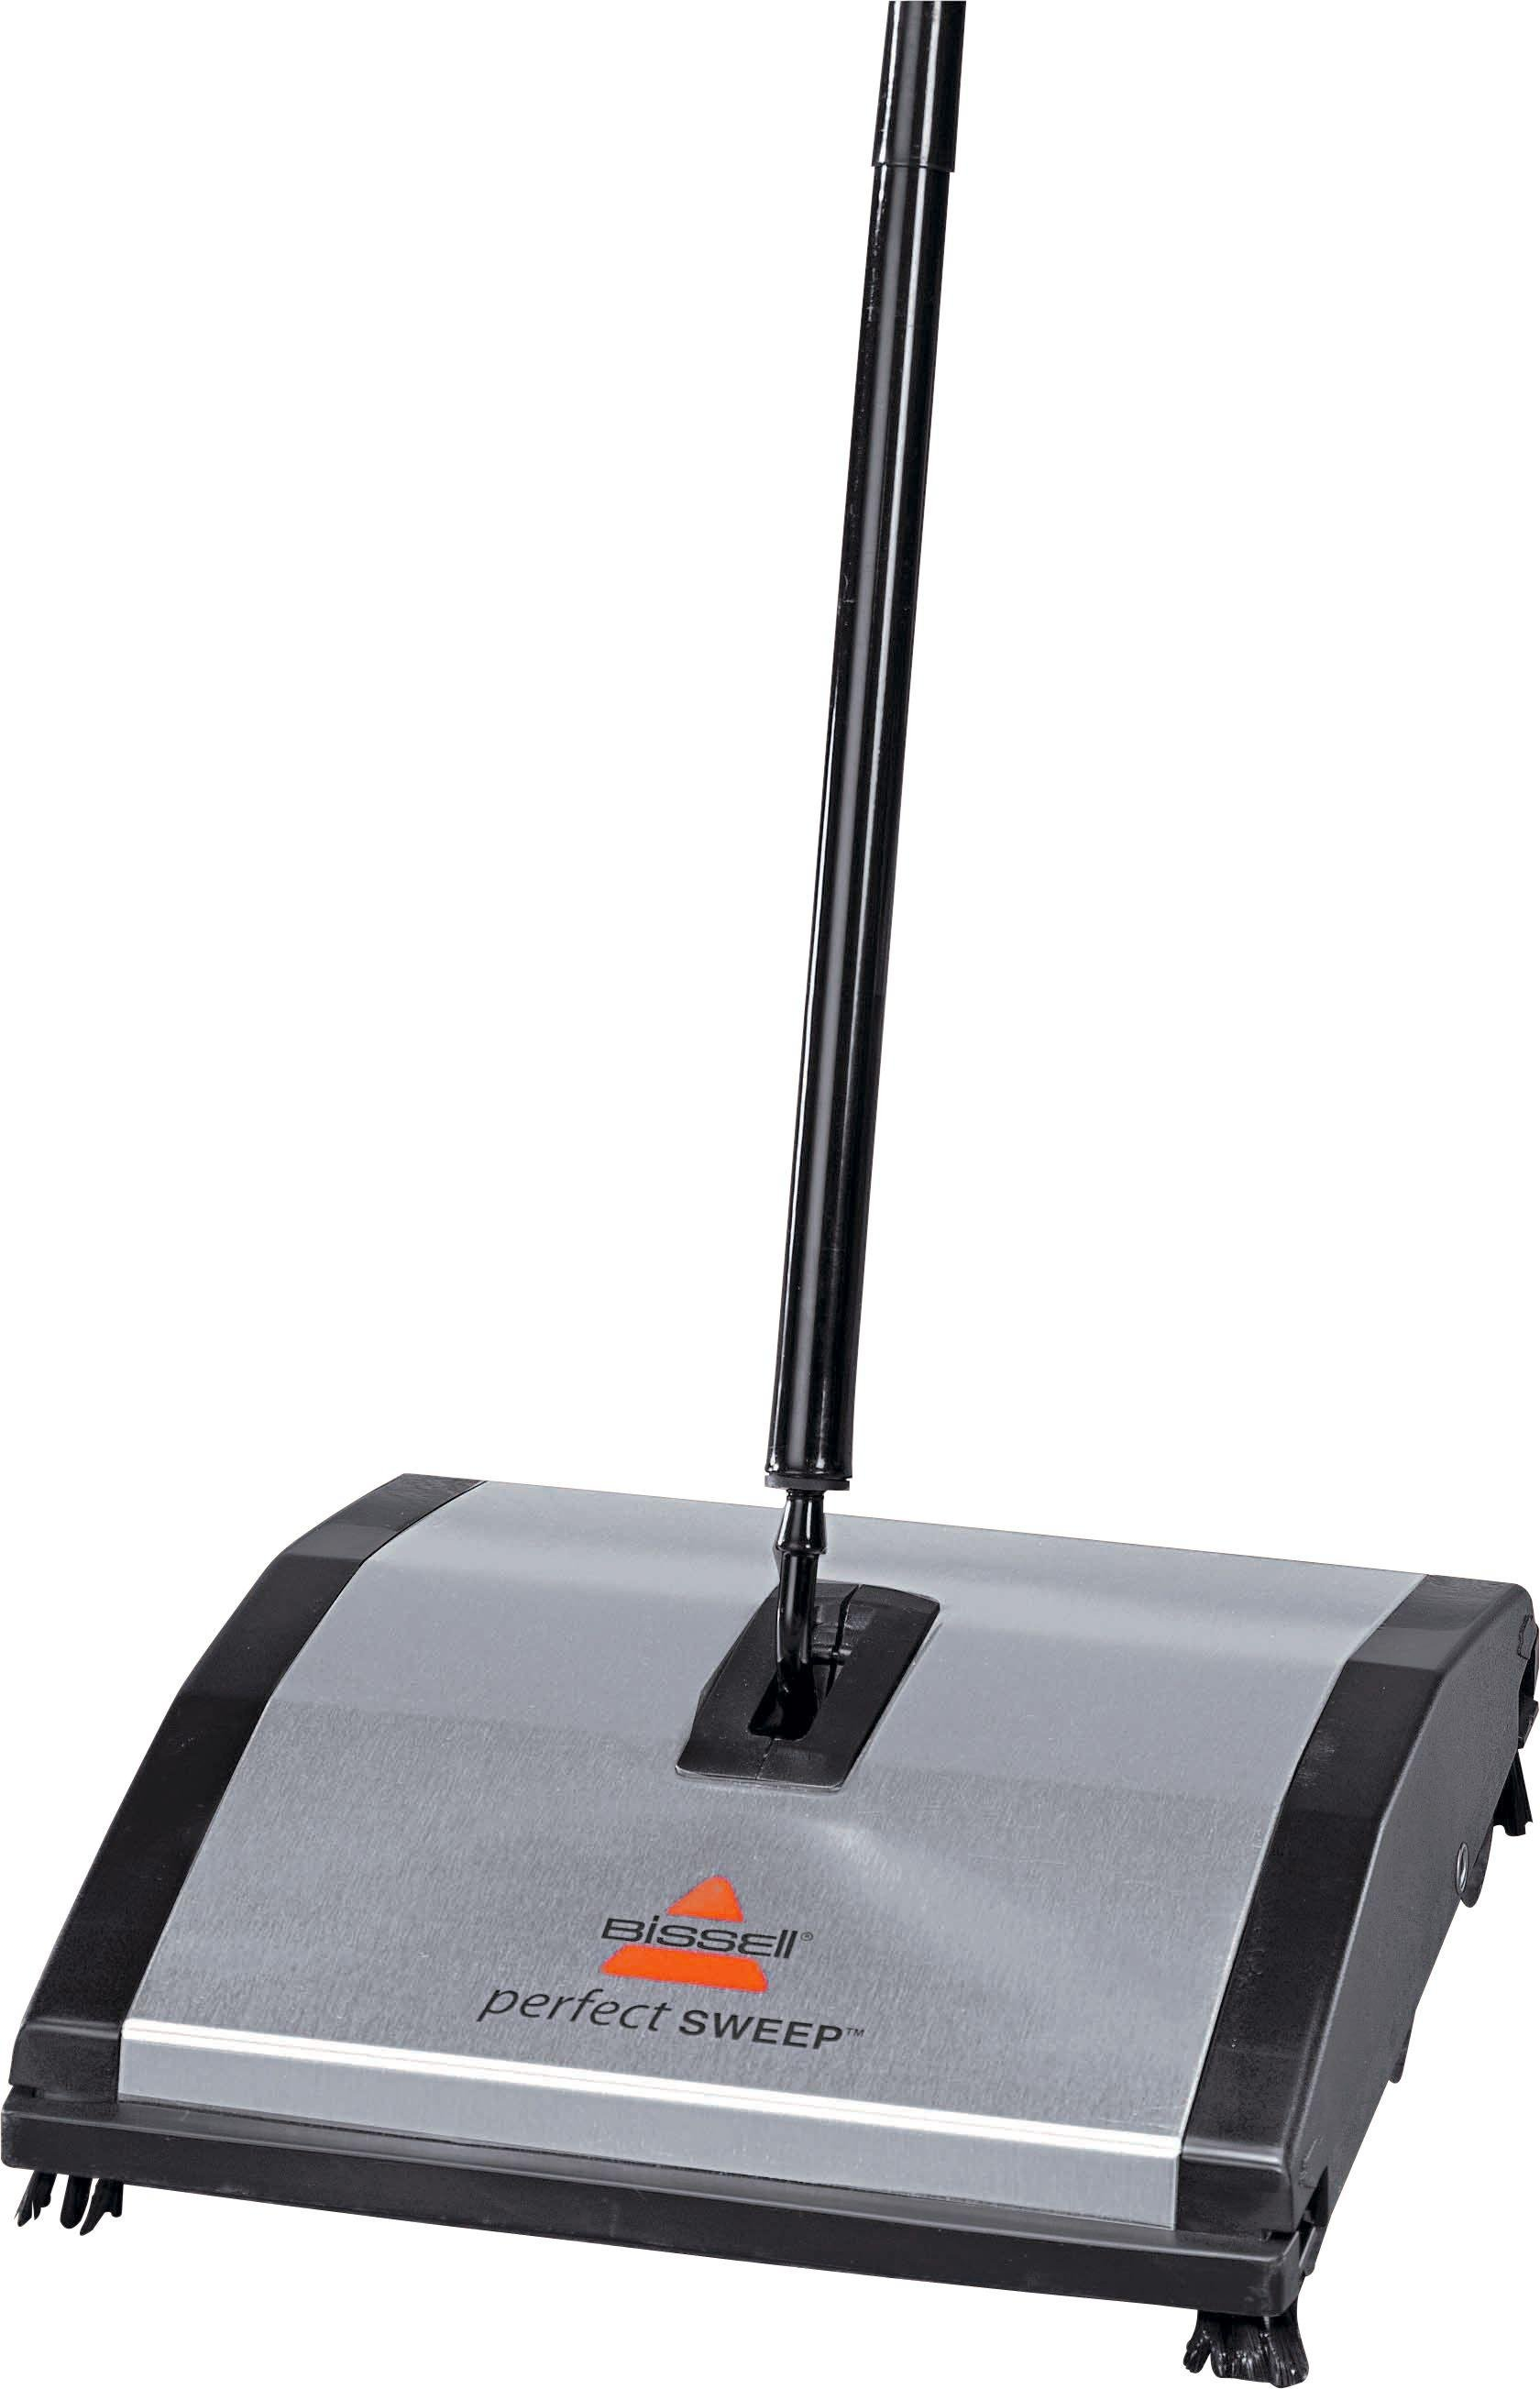 carpet sweeper. bissell p3840 perfect sweep floor sweeper carpet w